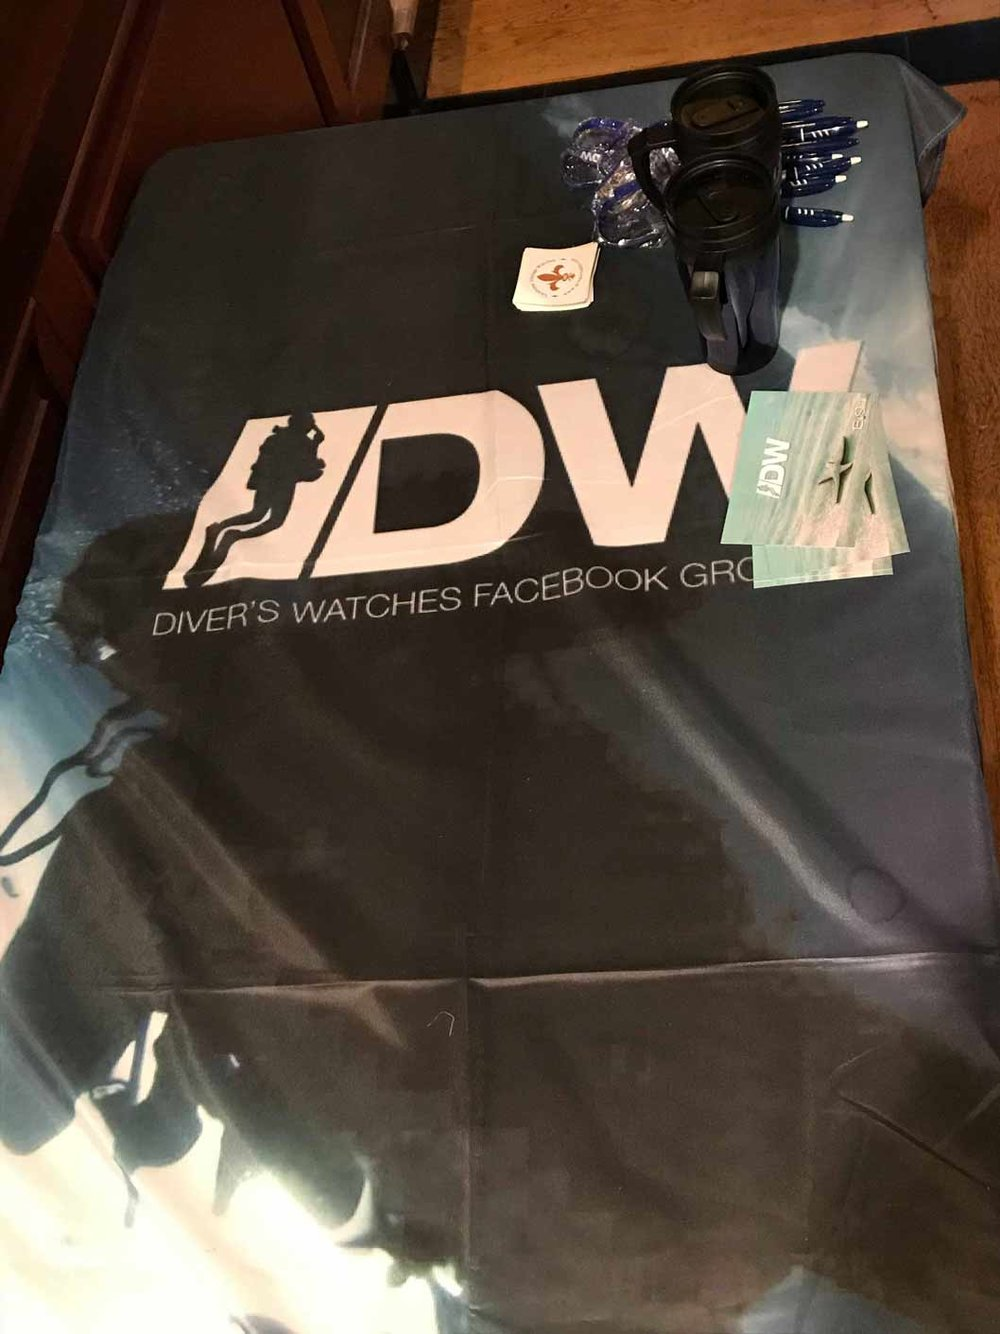 A special thanks to the Divers Watches Facebook Group!